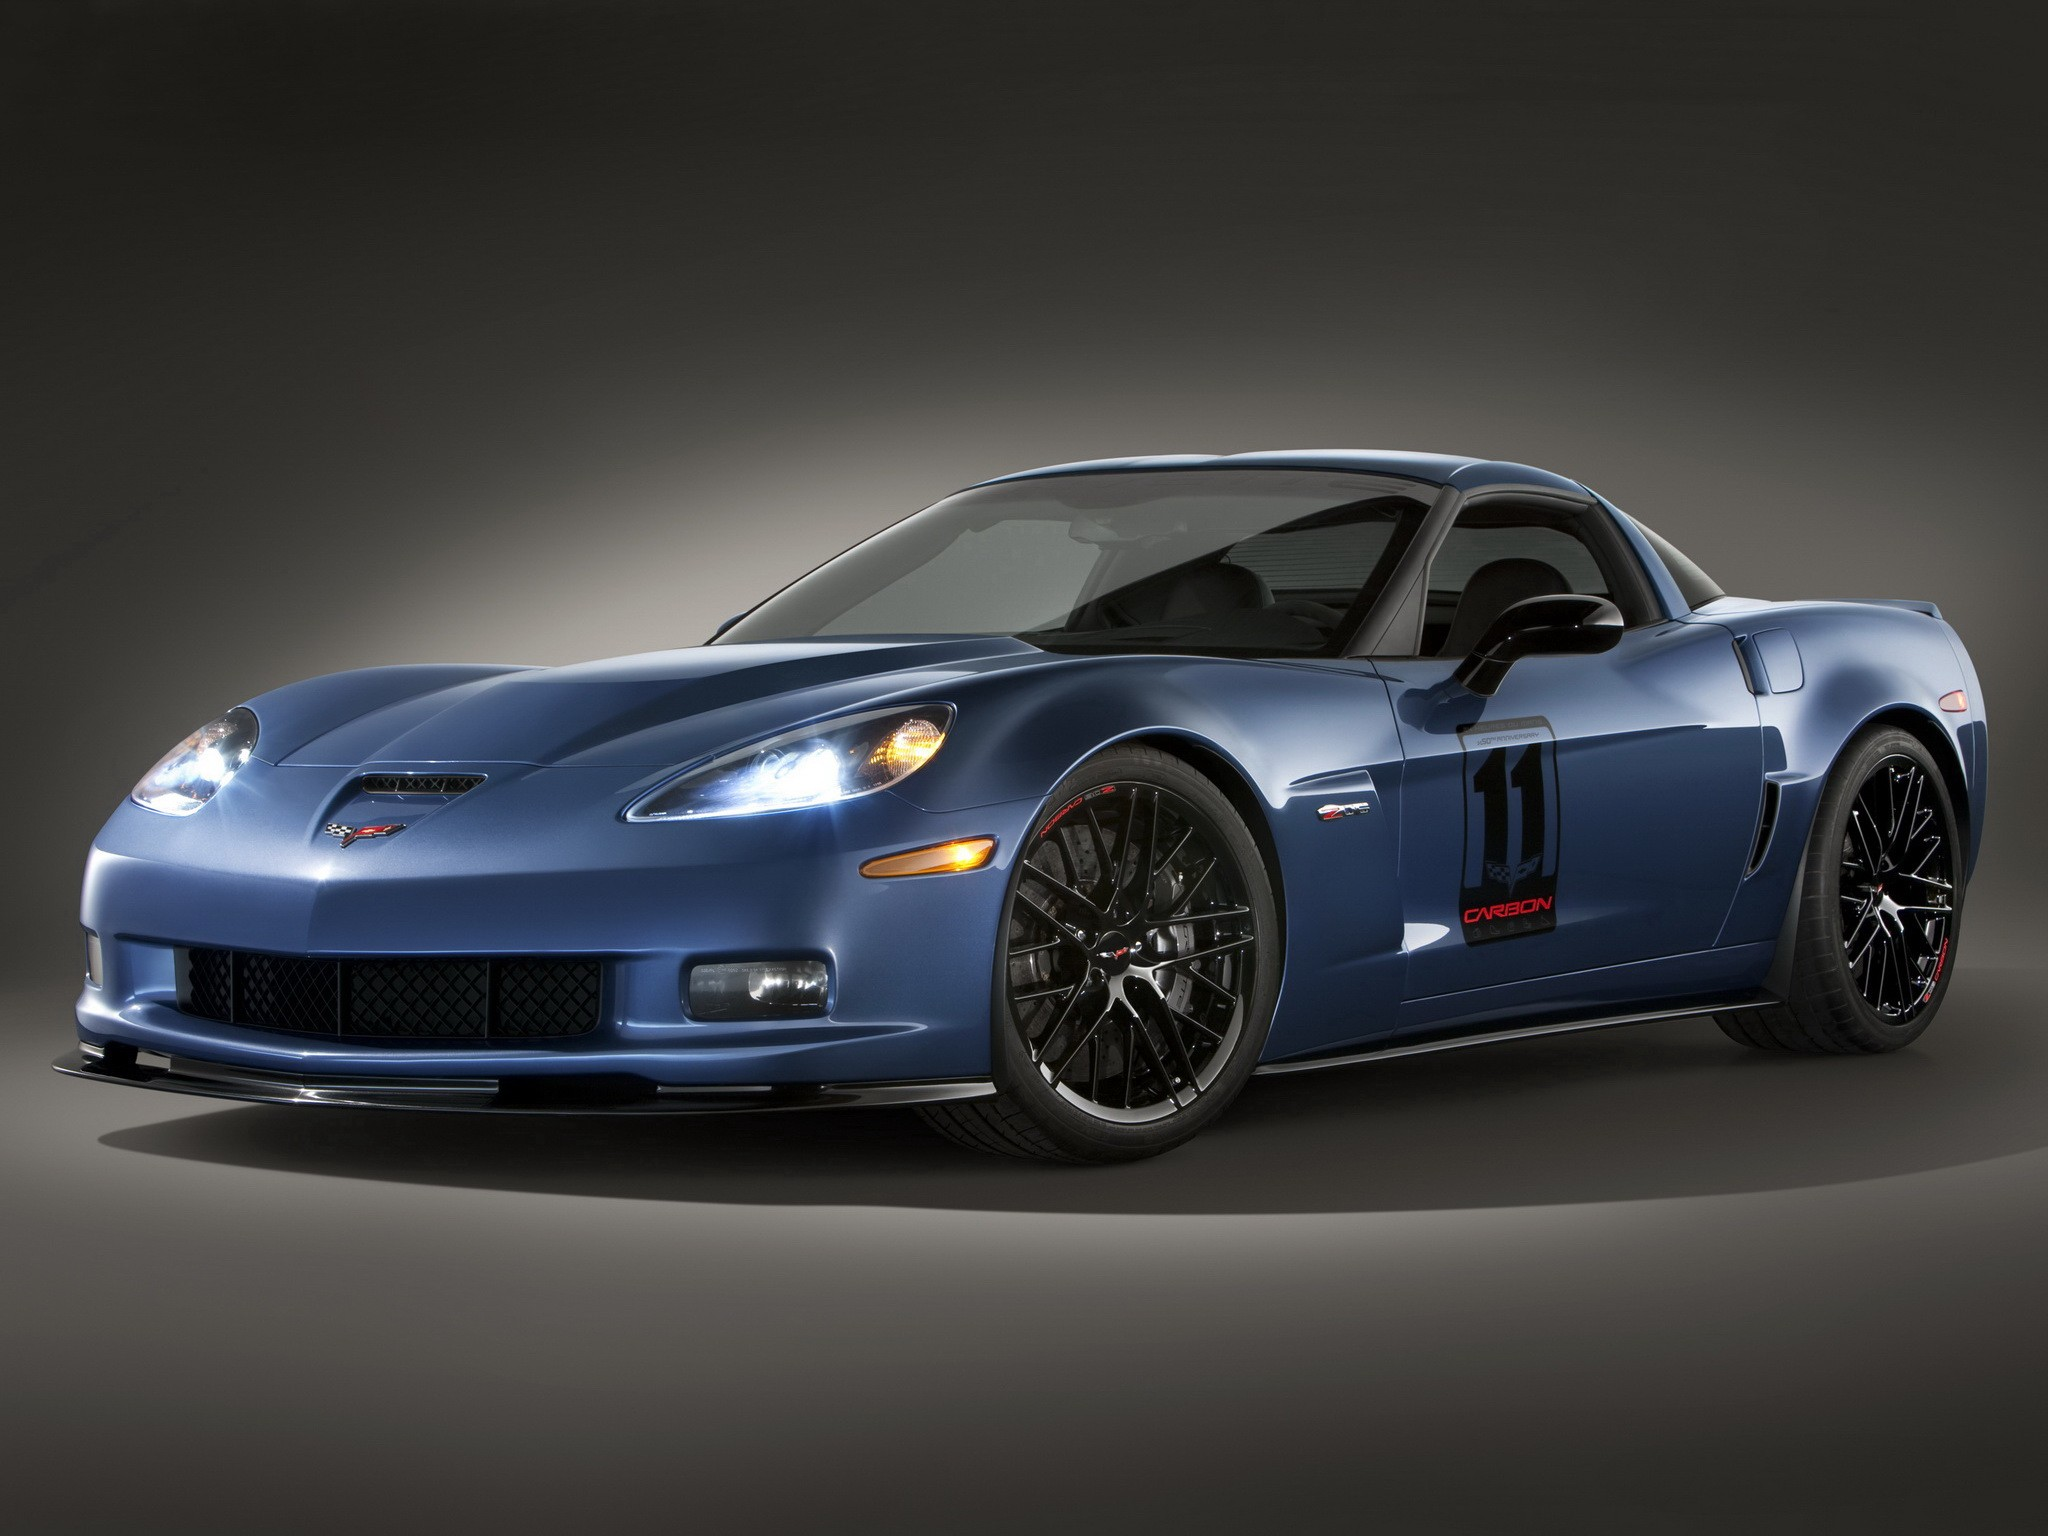 chevrolet corvette z06 specs 2008 2009 2010 2011 2012 2013 autoevolution. Black Bedroom Furniture Sets. Home Design Ideas